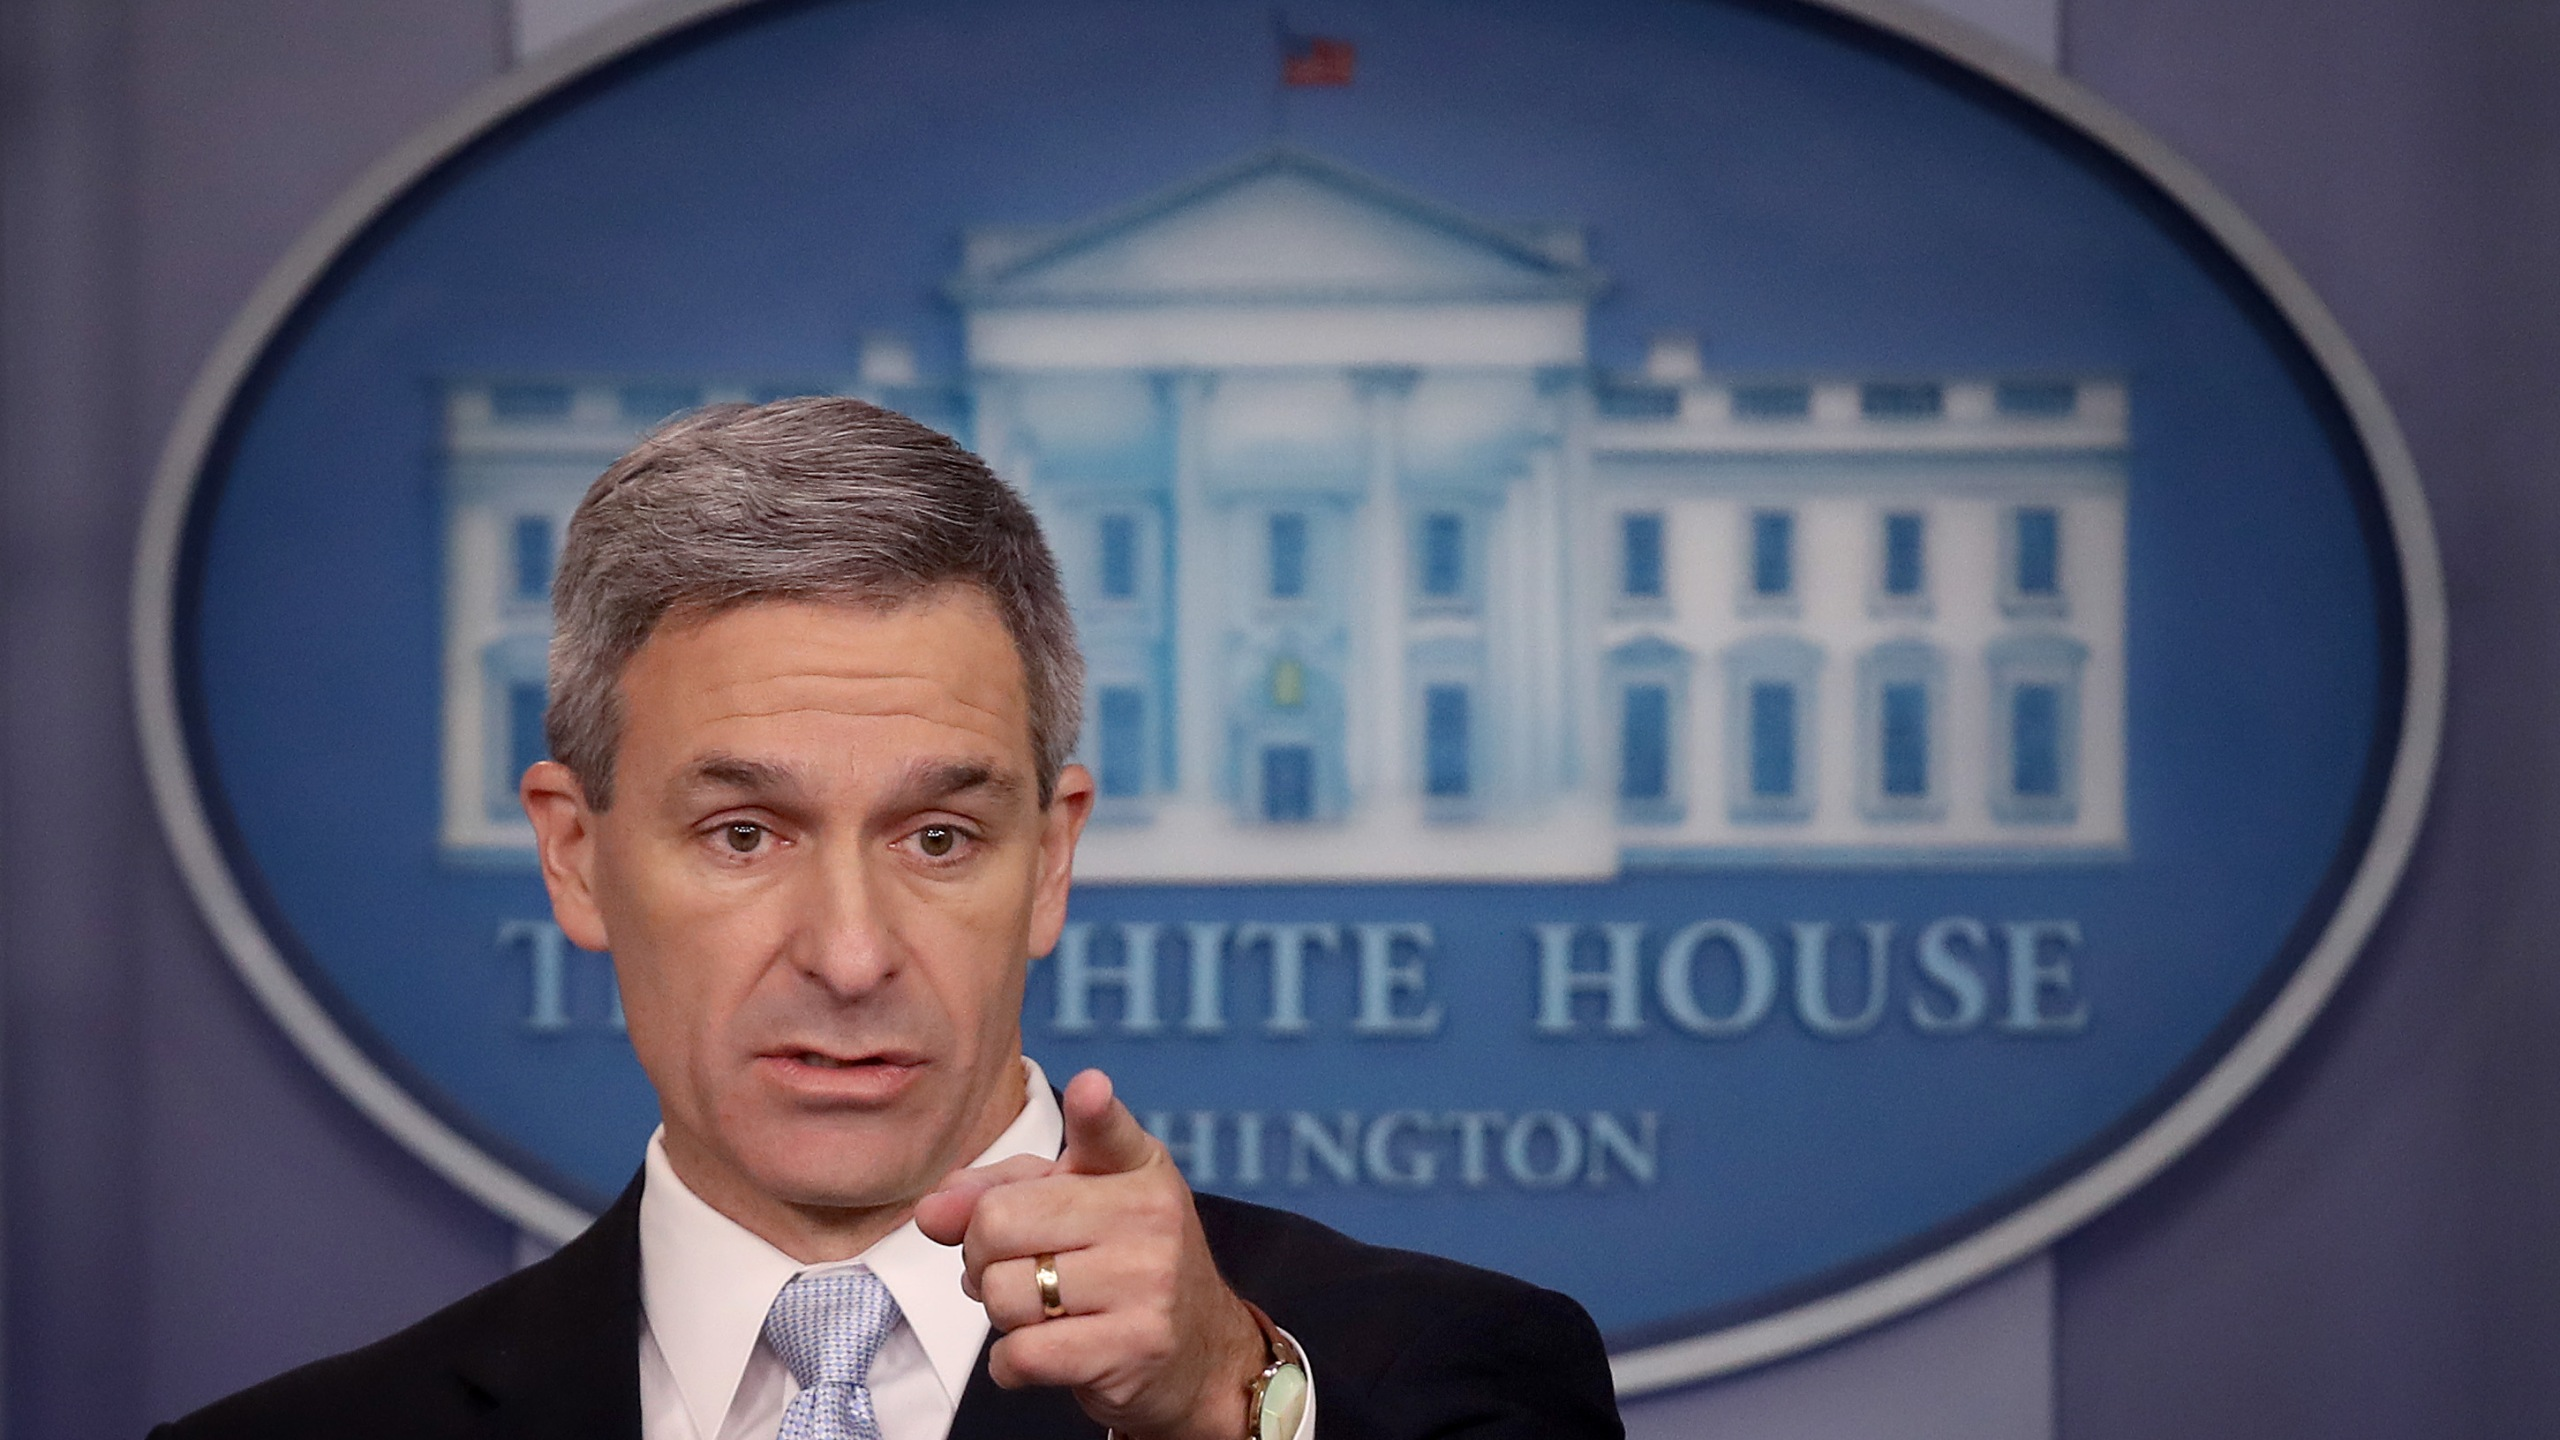 Acting Director of U.S. Citizenship and Immigration Services Ken Cuccinelli speaks about immigration policy at the White House on Aug. 12, 2019. (Credit: Win McNamee / Getty Images)